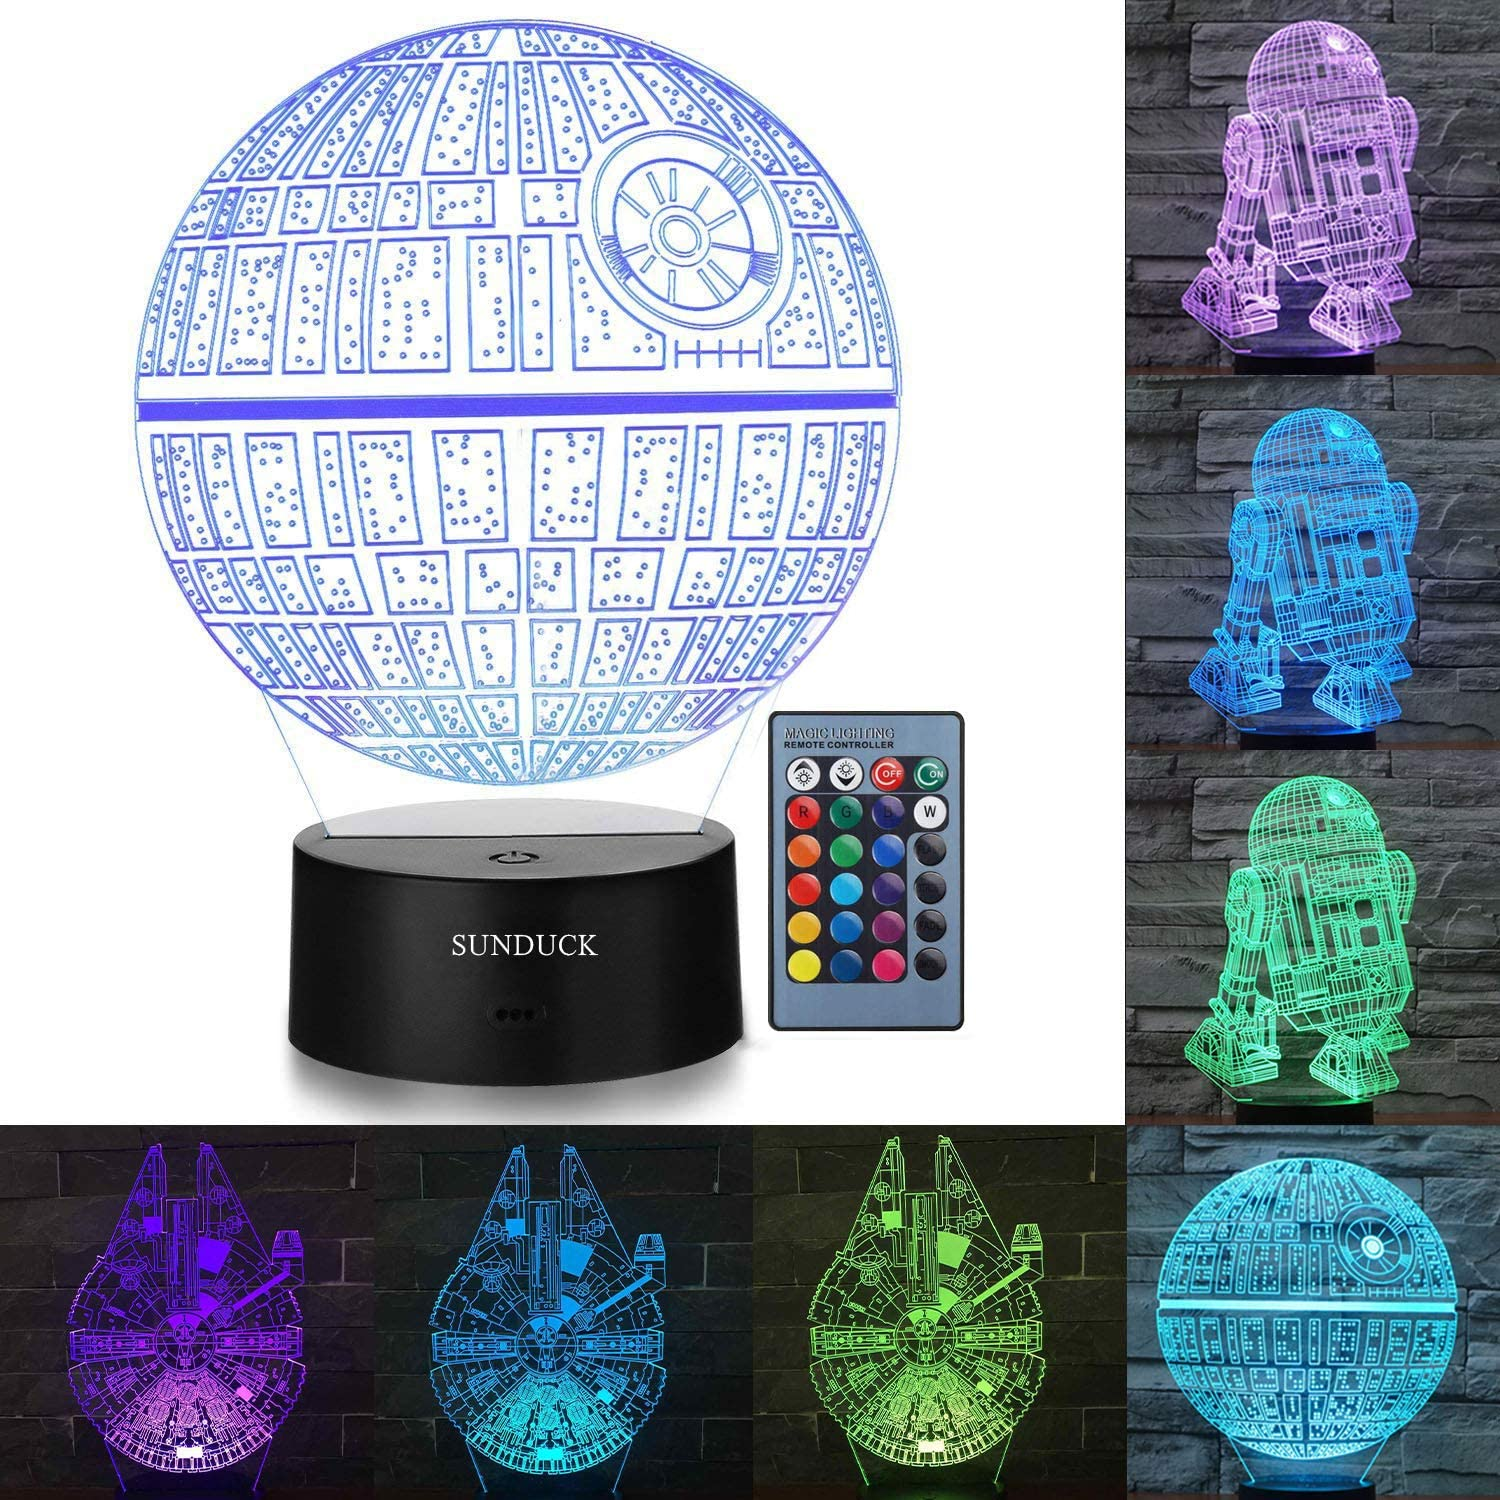 Sunduck 3D Star Wars Night Light for Kids Star Wars Gifts Illusion Lamp Three Pattern and 7 color Change Decor Lamp  Perfect for Star Wars Fans and Kids